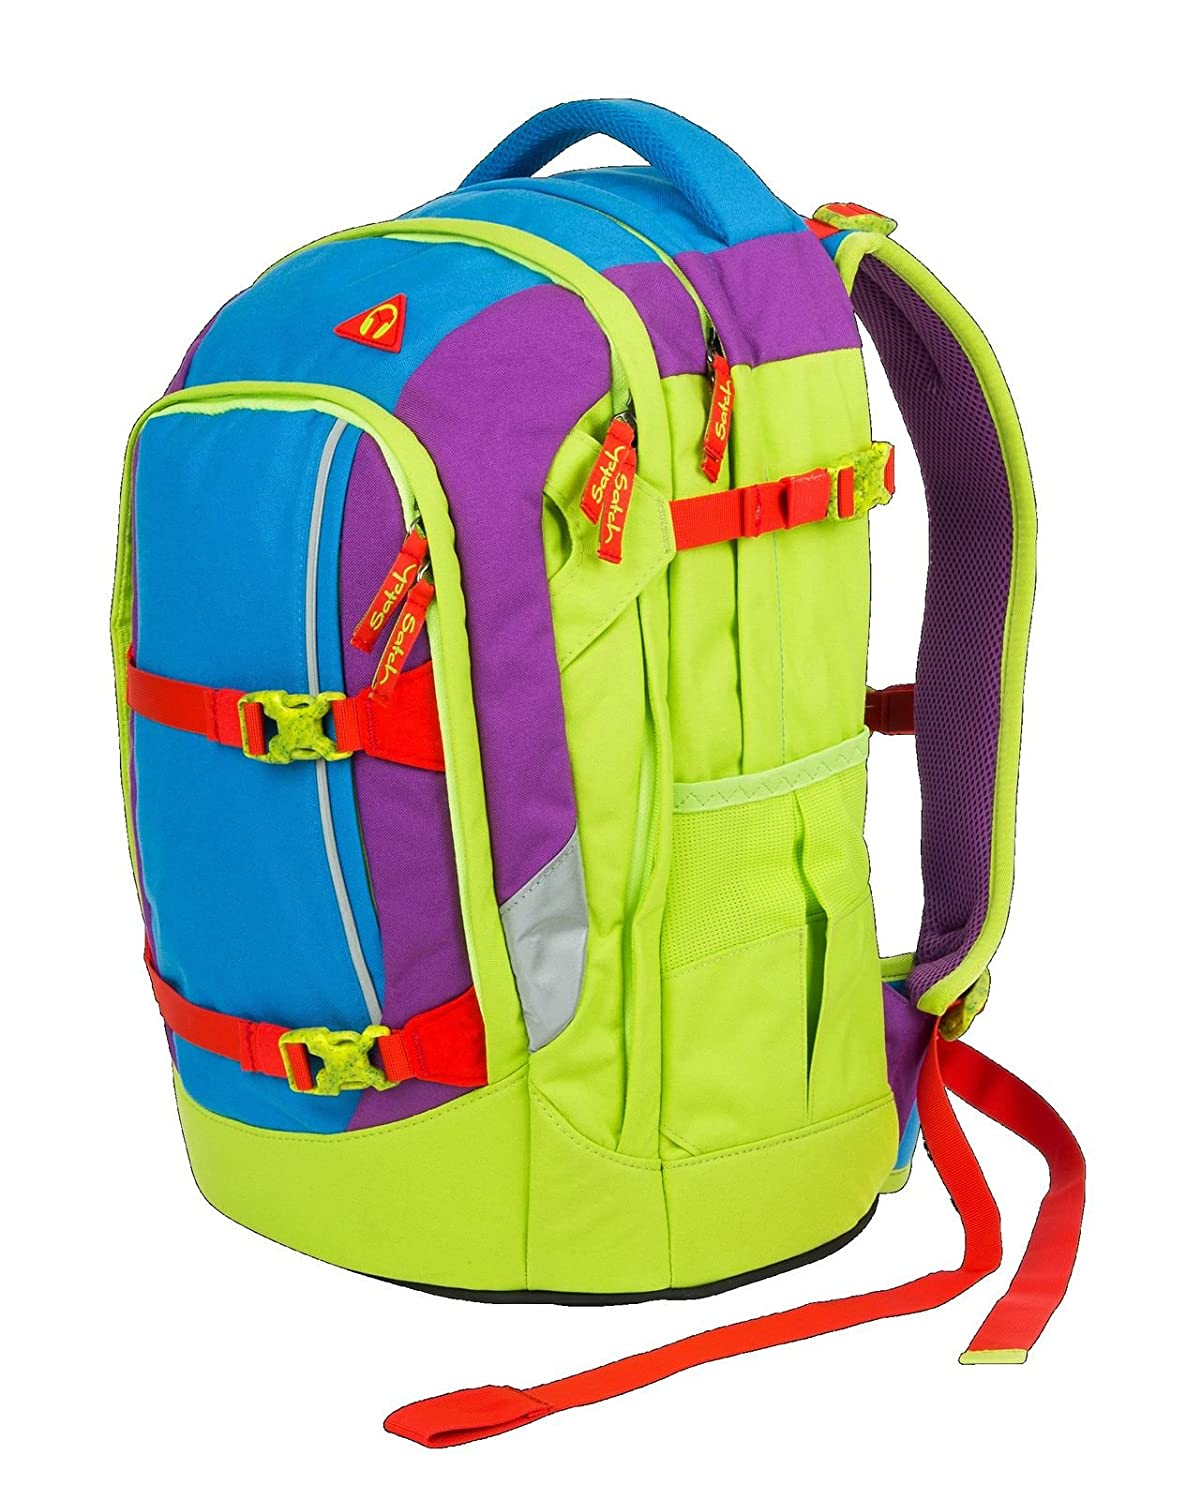 Satch Satch Satch pack Flash Jumper 3er Set Rucksack, Heftebox & Regencape Blau B071VK6LKF | München Online Shop